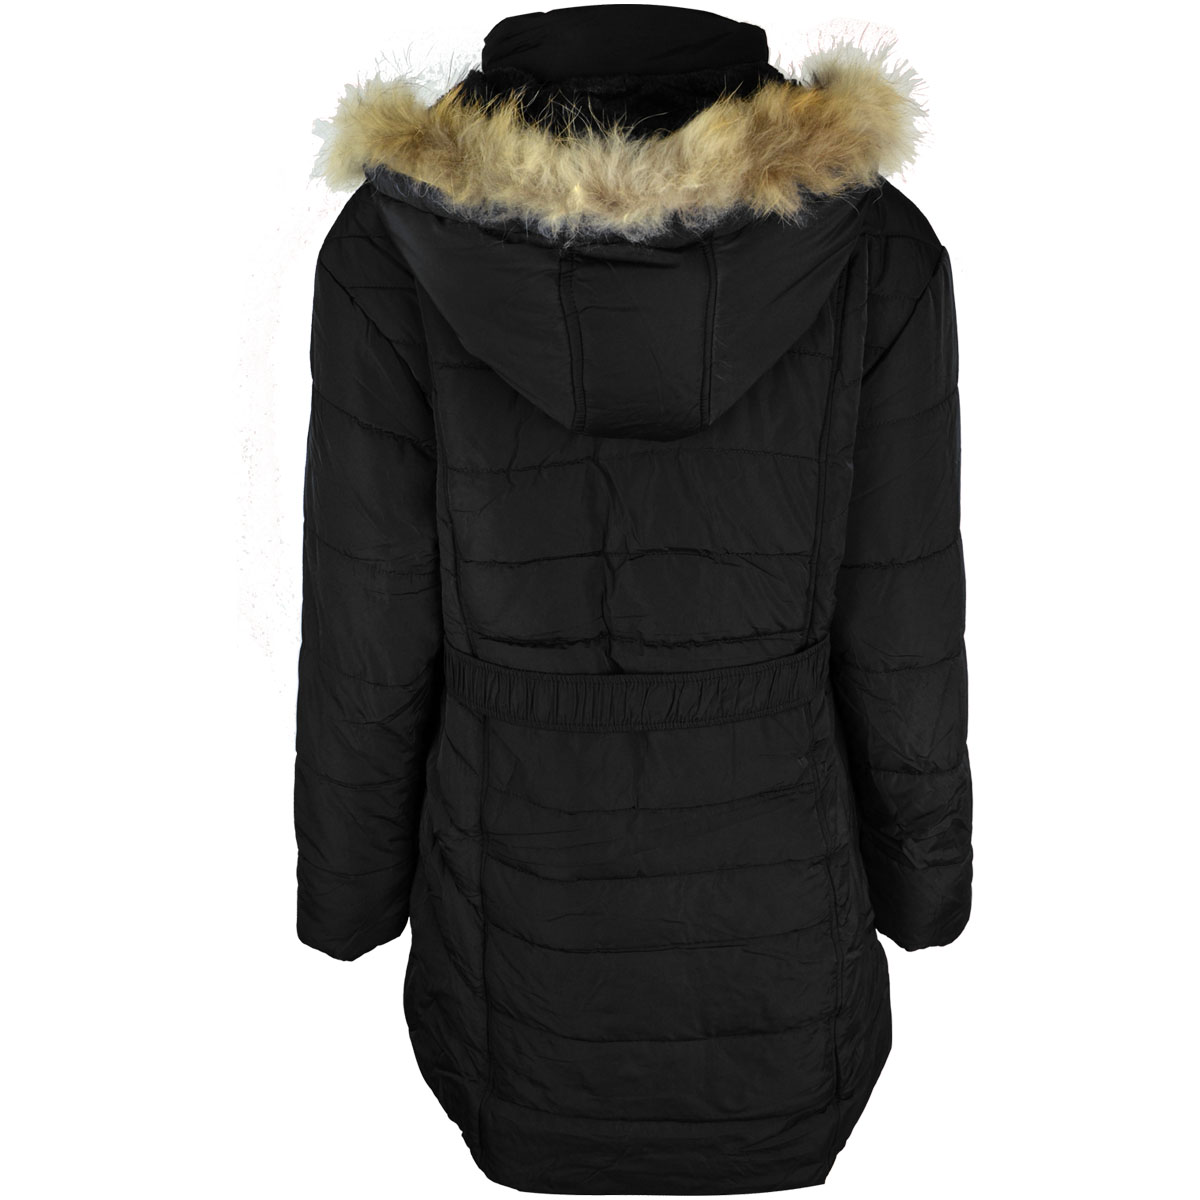 thumbnail 4 - Womens-Ladies-Plus-Over-Size-Winter-Long-Jacket-Puffer-Coat-Detachable-Hood